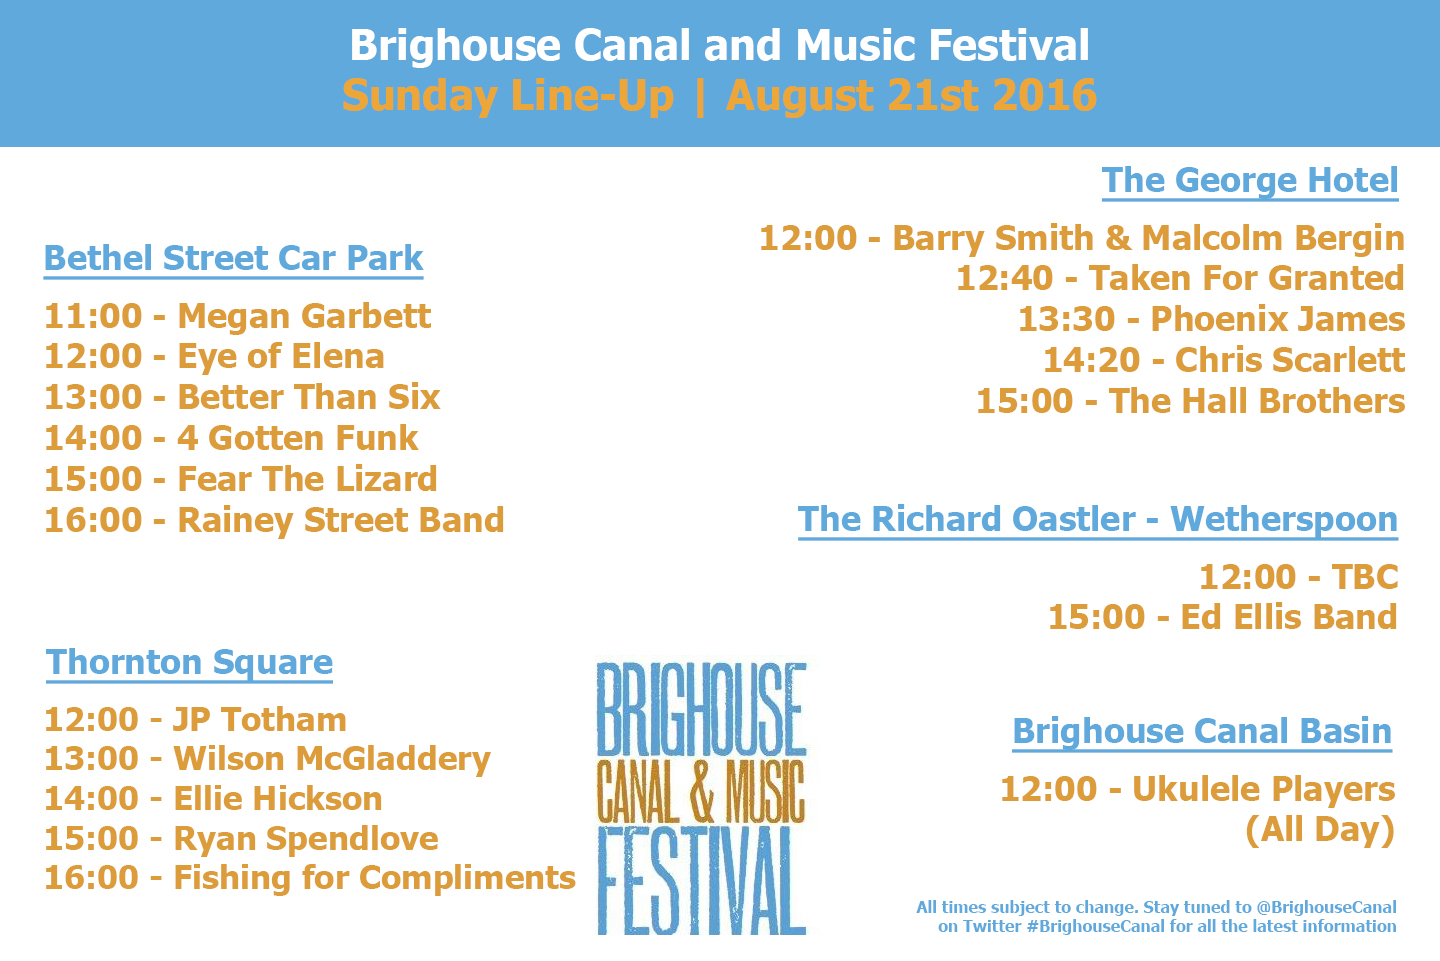 Sunday LineUp Brighouse Canal and Music Festival 2016